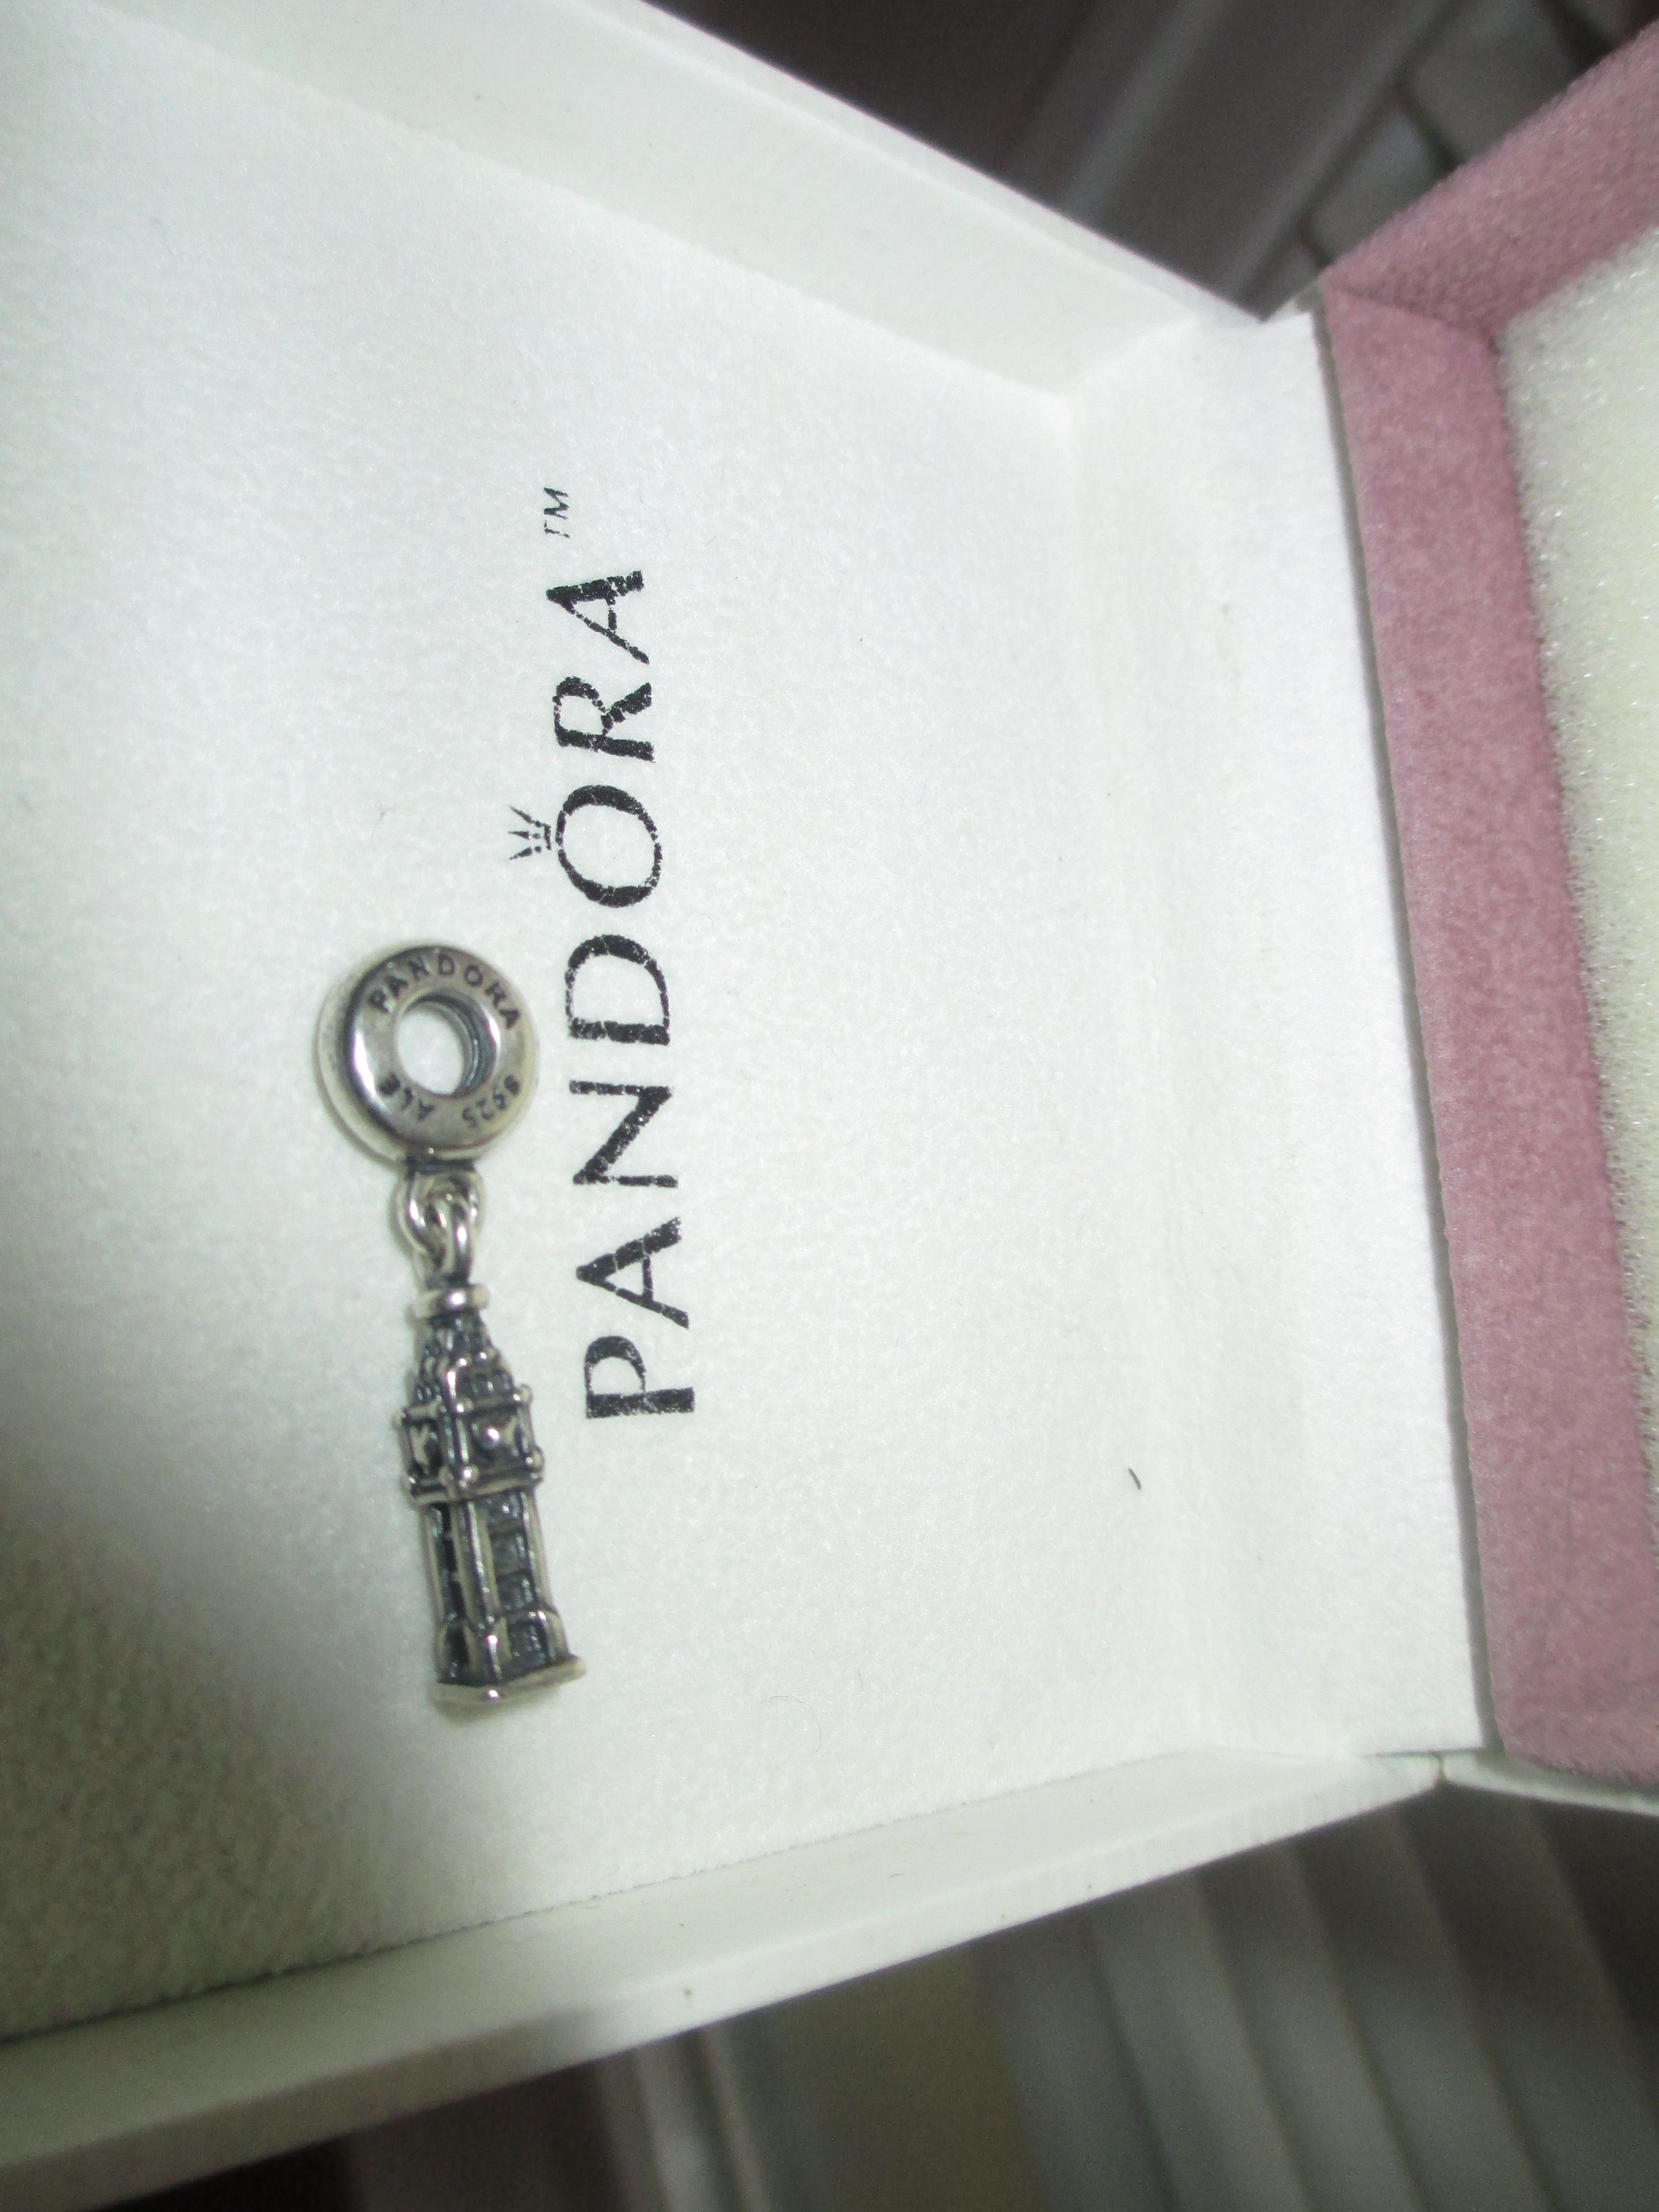 15b7f7669 Pandora Big Ben London Sterling Silver Charm 791080 New Retired. Get the  lowest price on